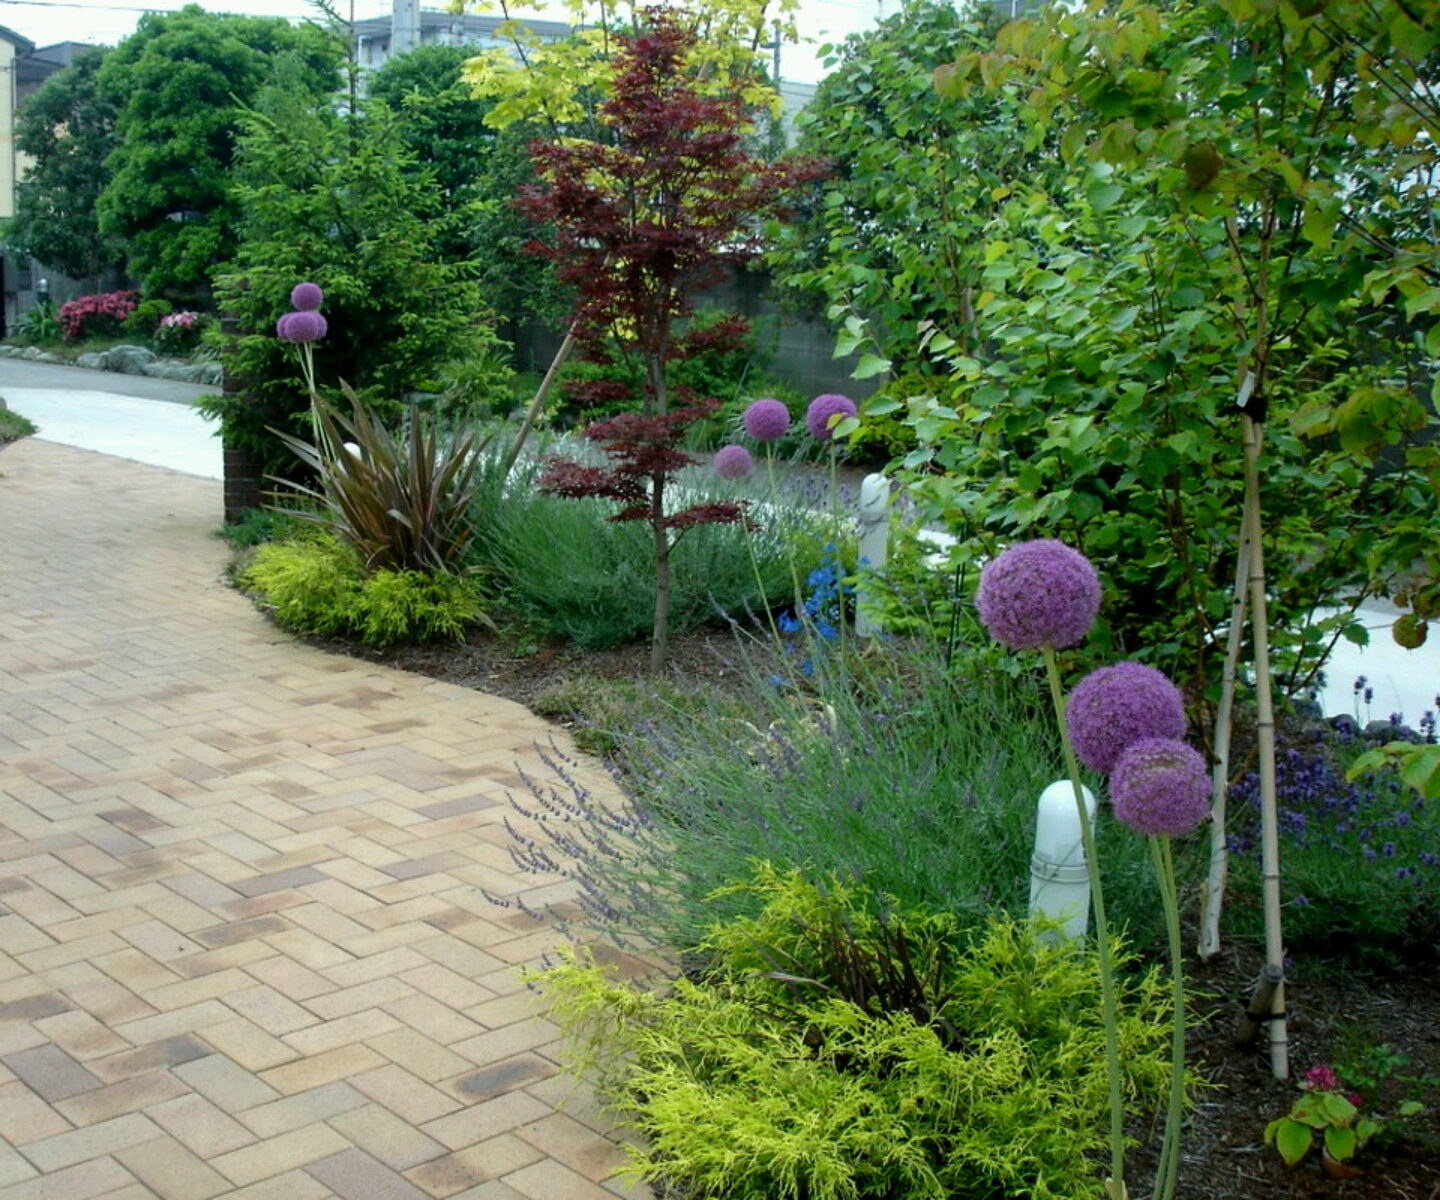 Home Garden Landscaping Ideas: Beautiful Home Gardens Designs Ideas.